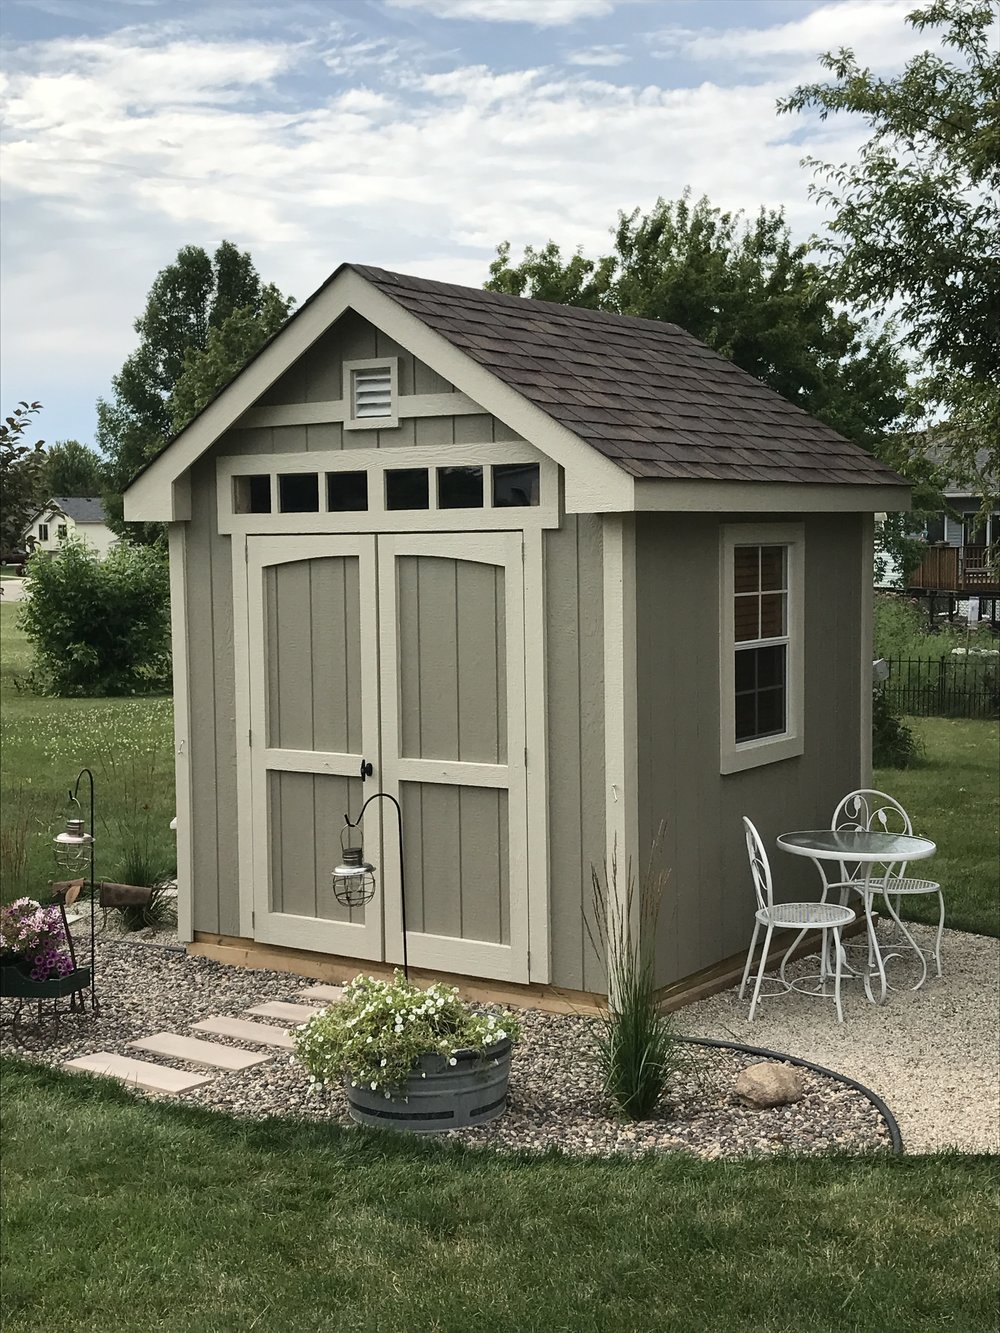 8x8 Gable Deluxe.jpeg